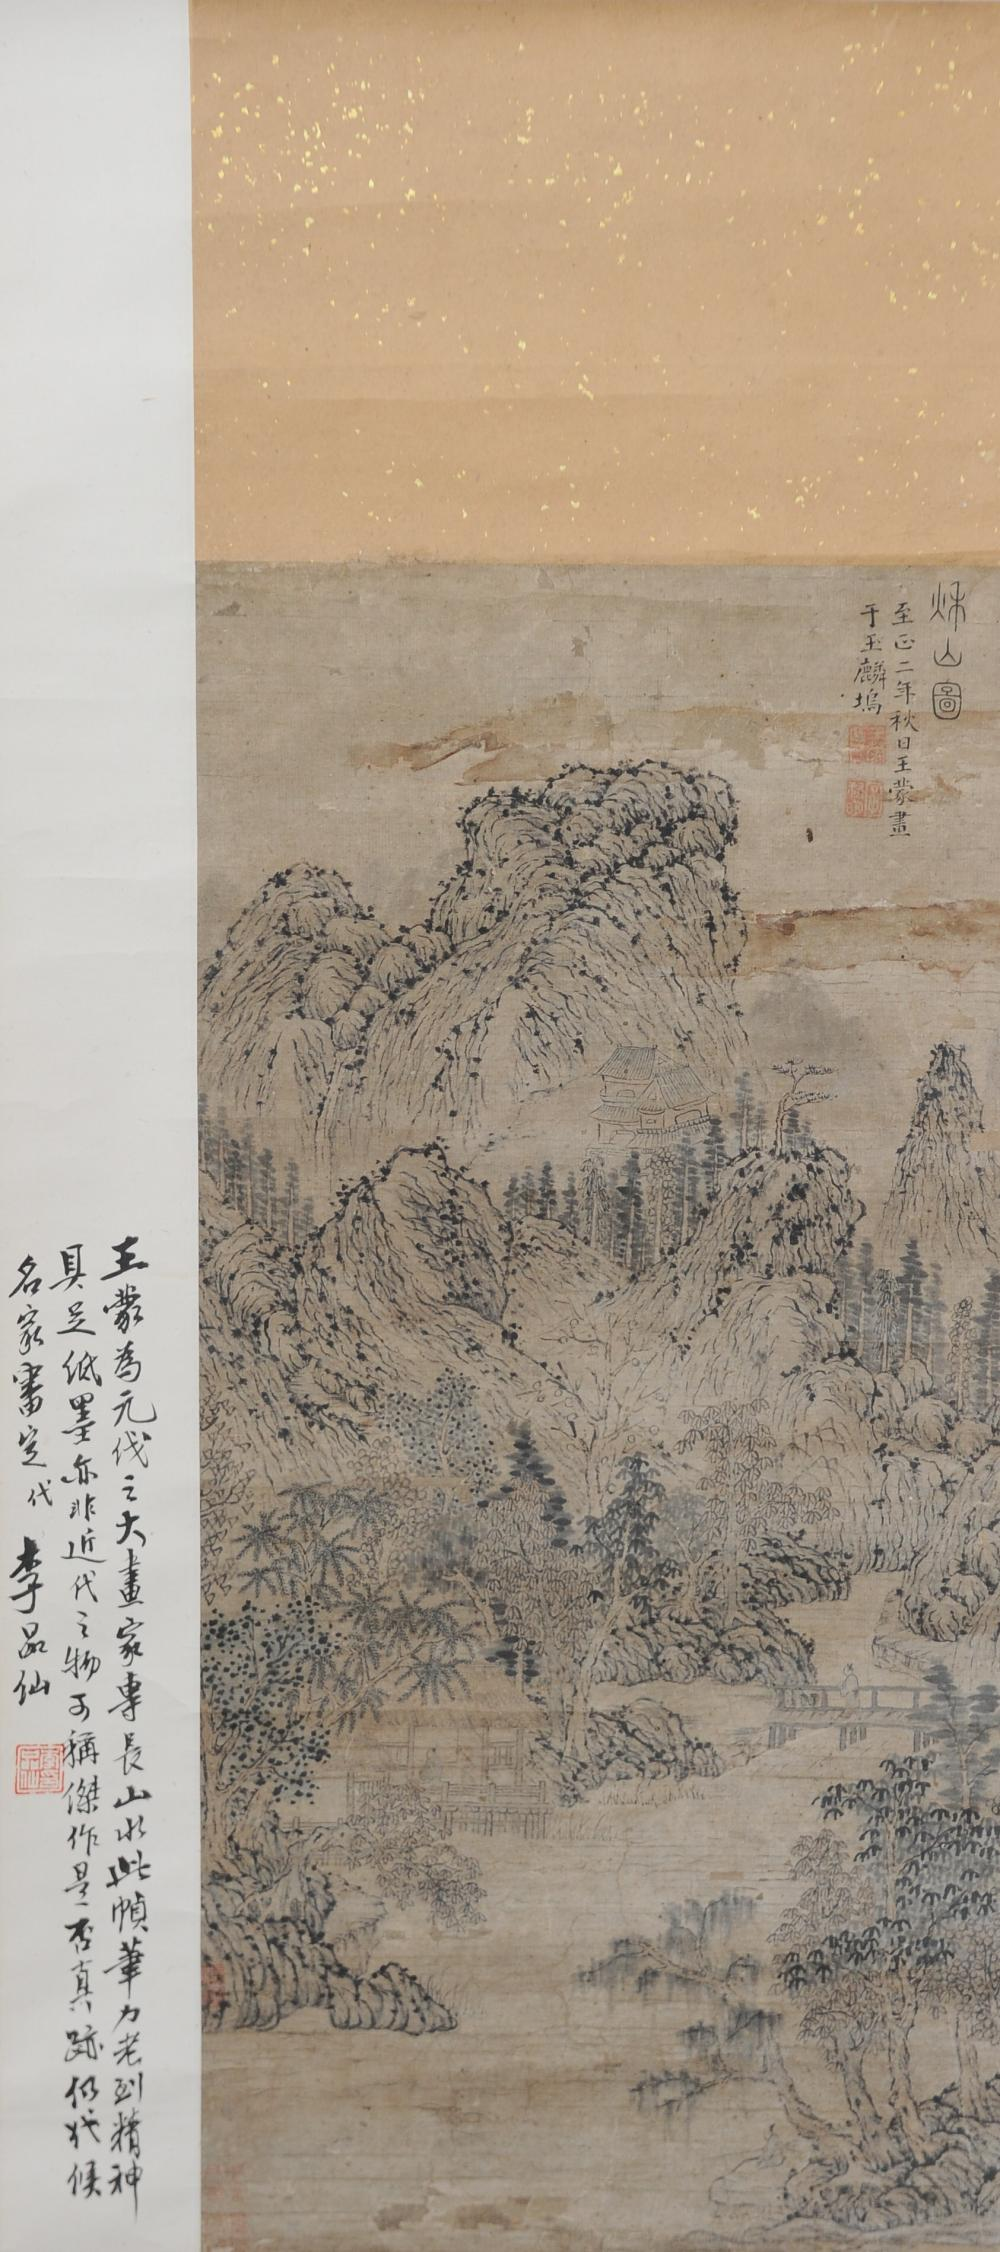 PAINTING ON SILK, ATTRIBUTED TO WANG MENG W/ NOTES